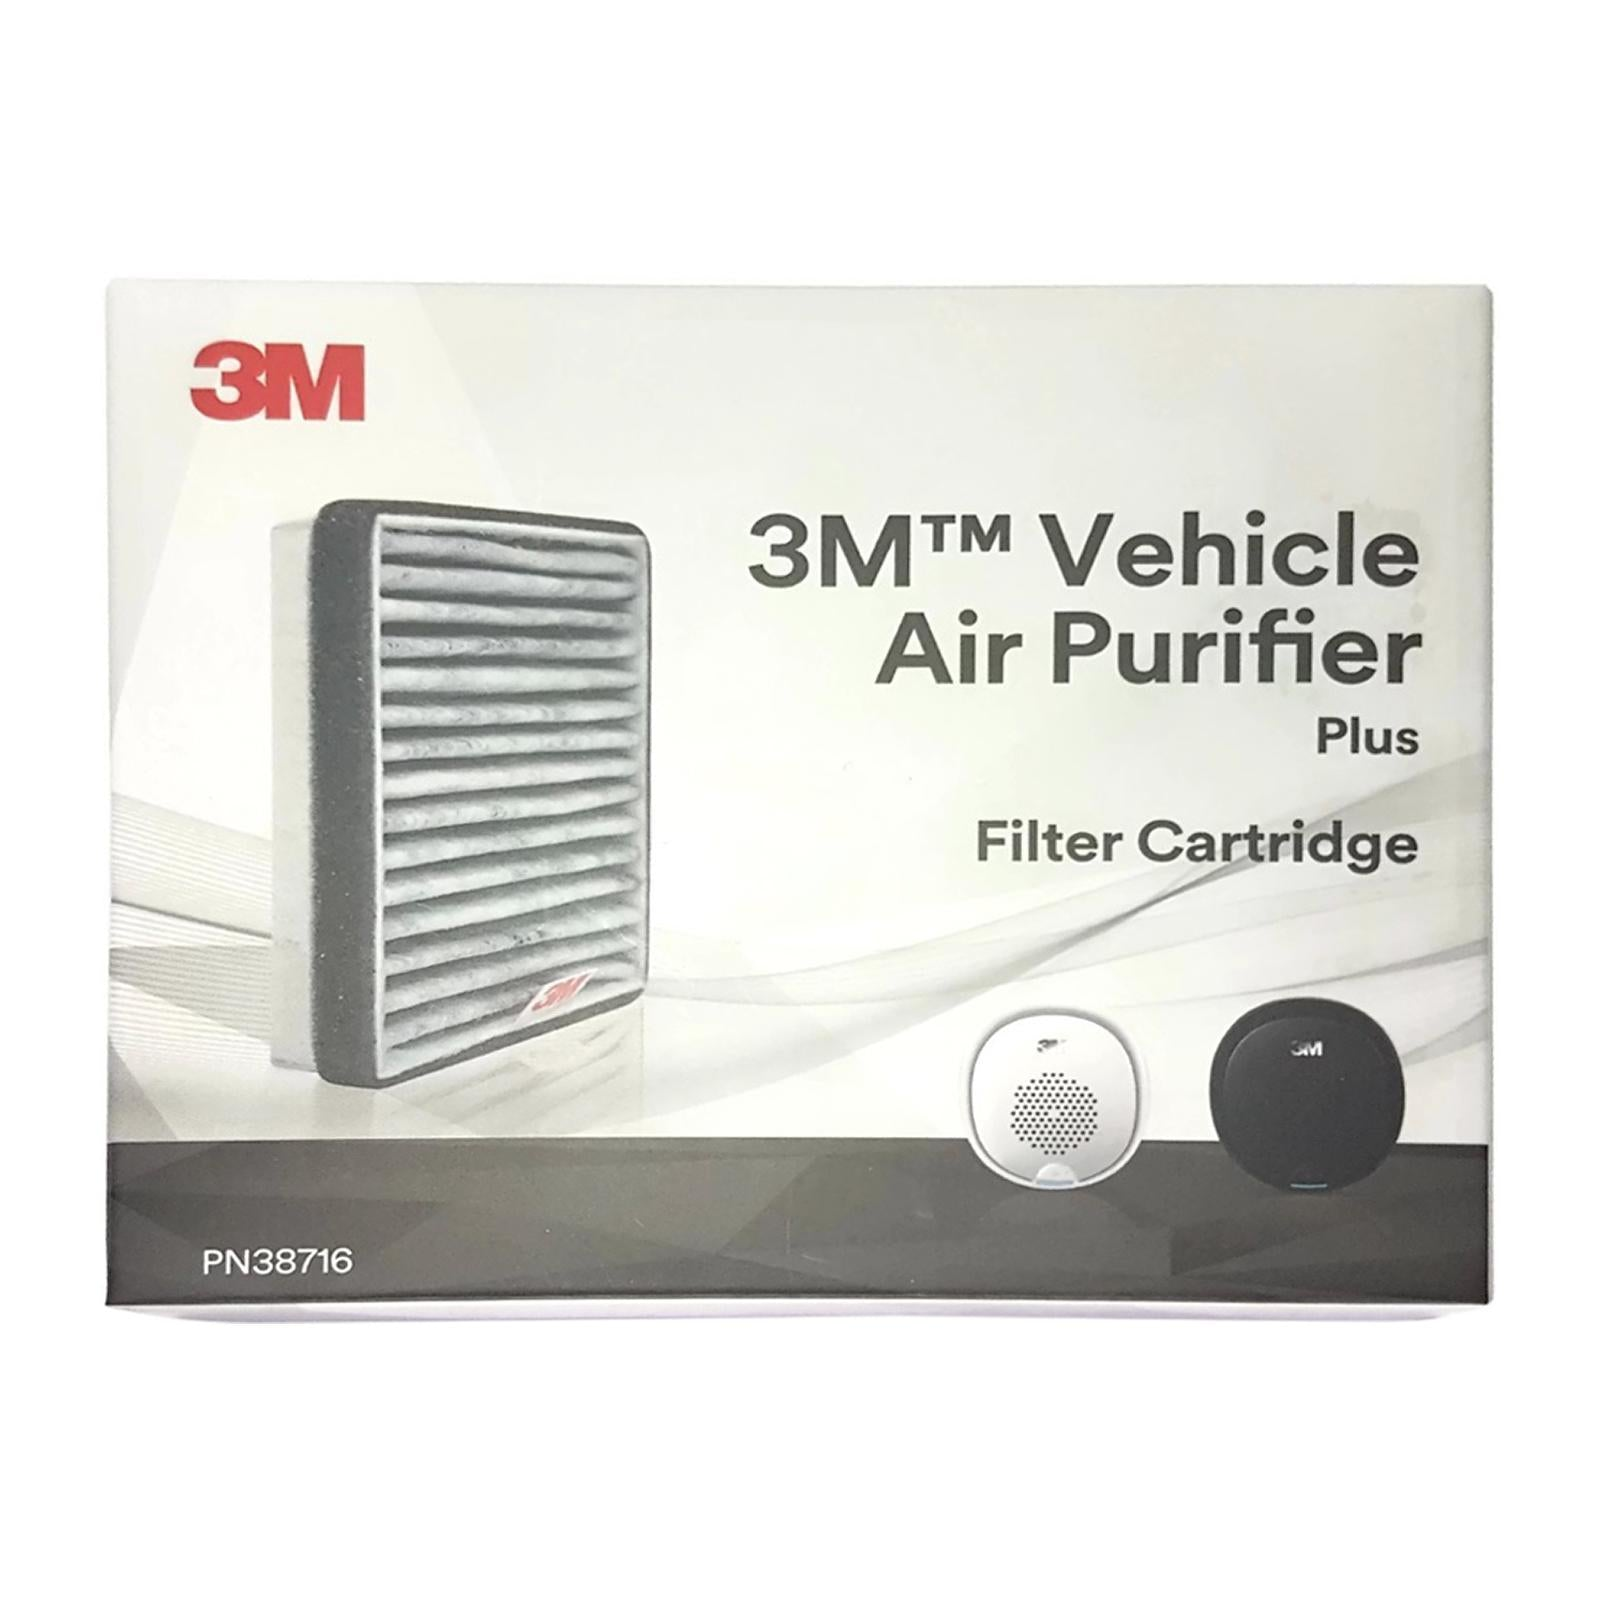 3M VEHICLE Air Purifier Filter Replacement